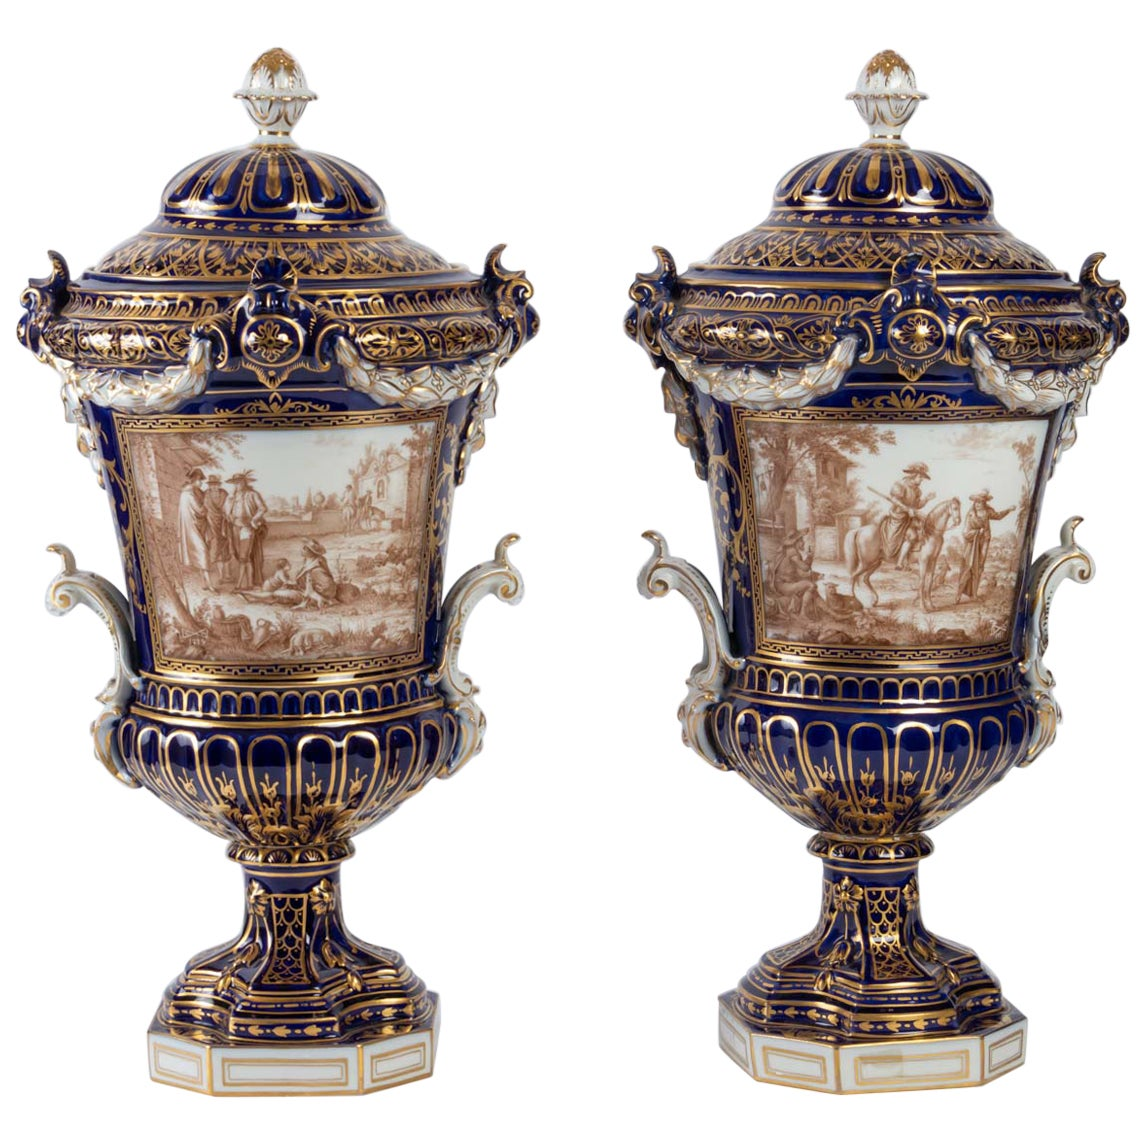 Pair of Covered Porcelain Vases